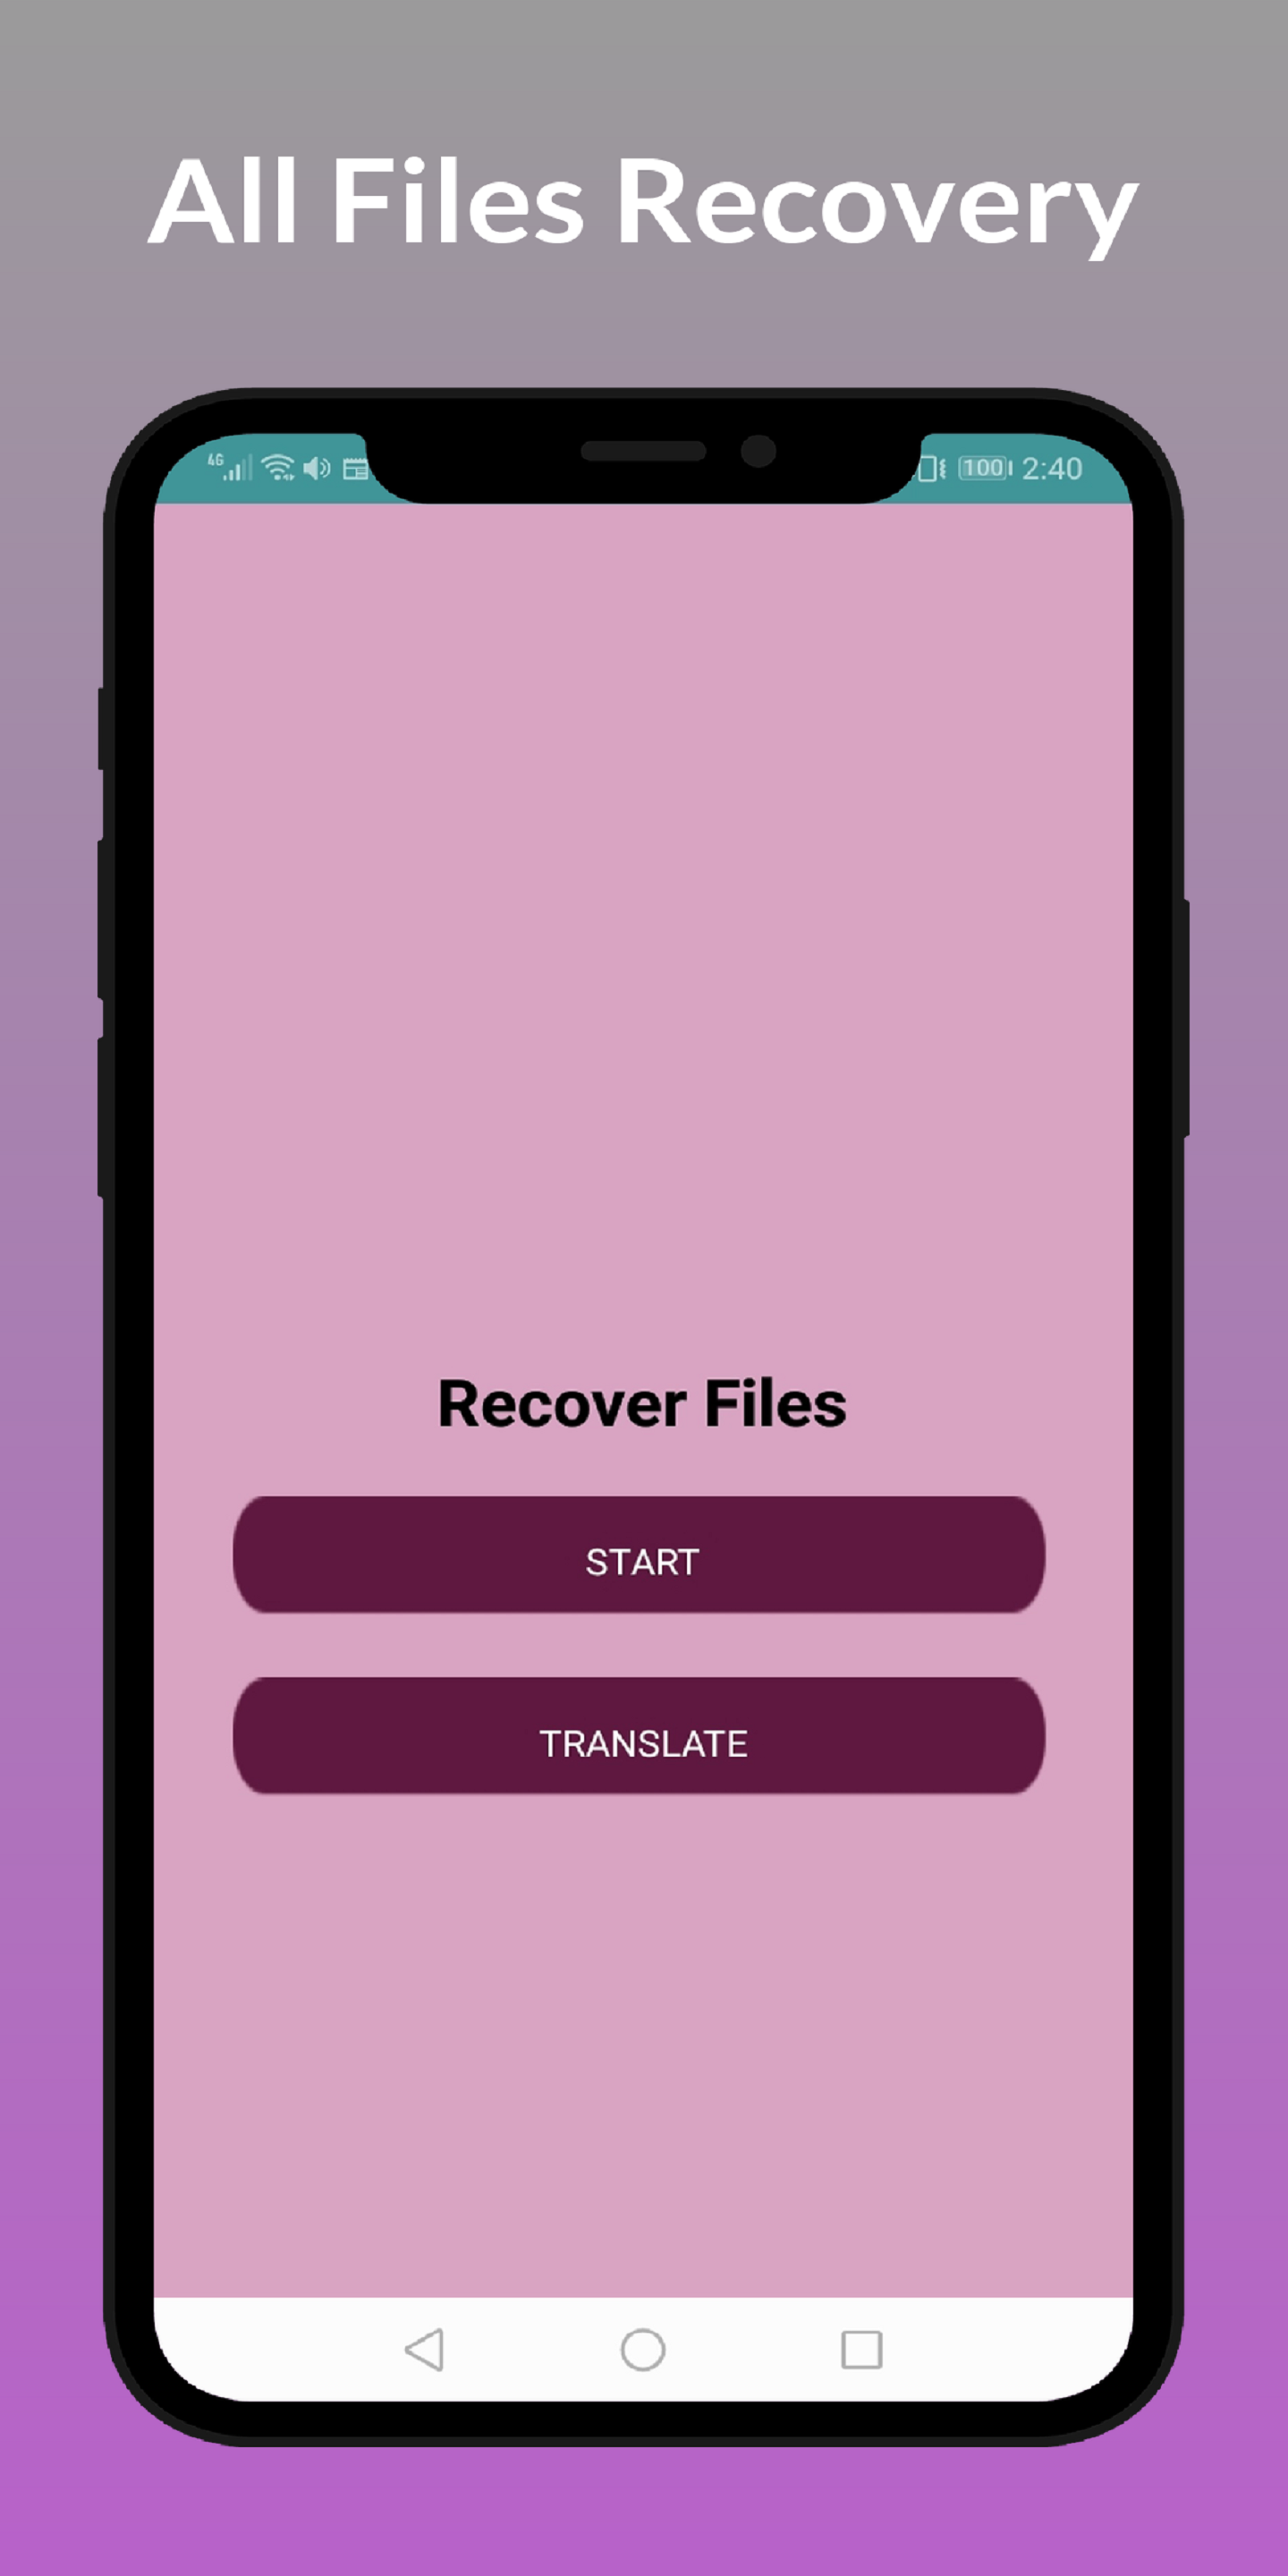 Recover all deleted files - Video, Audio Images